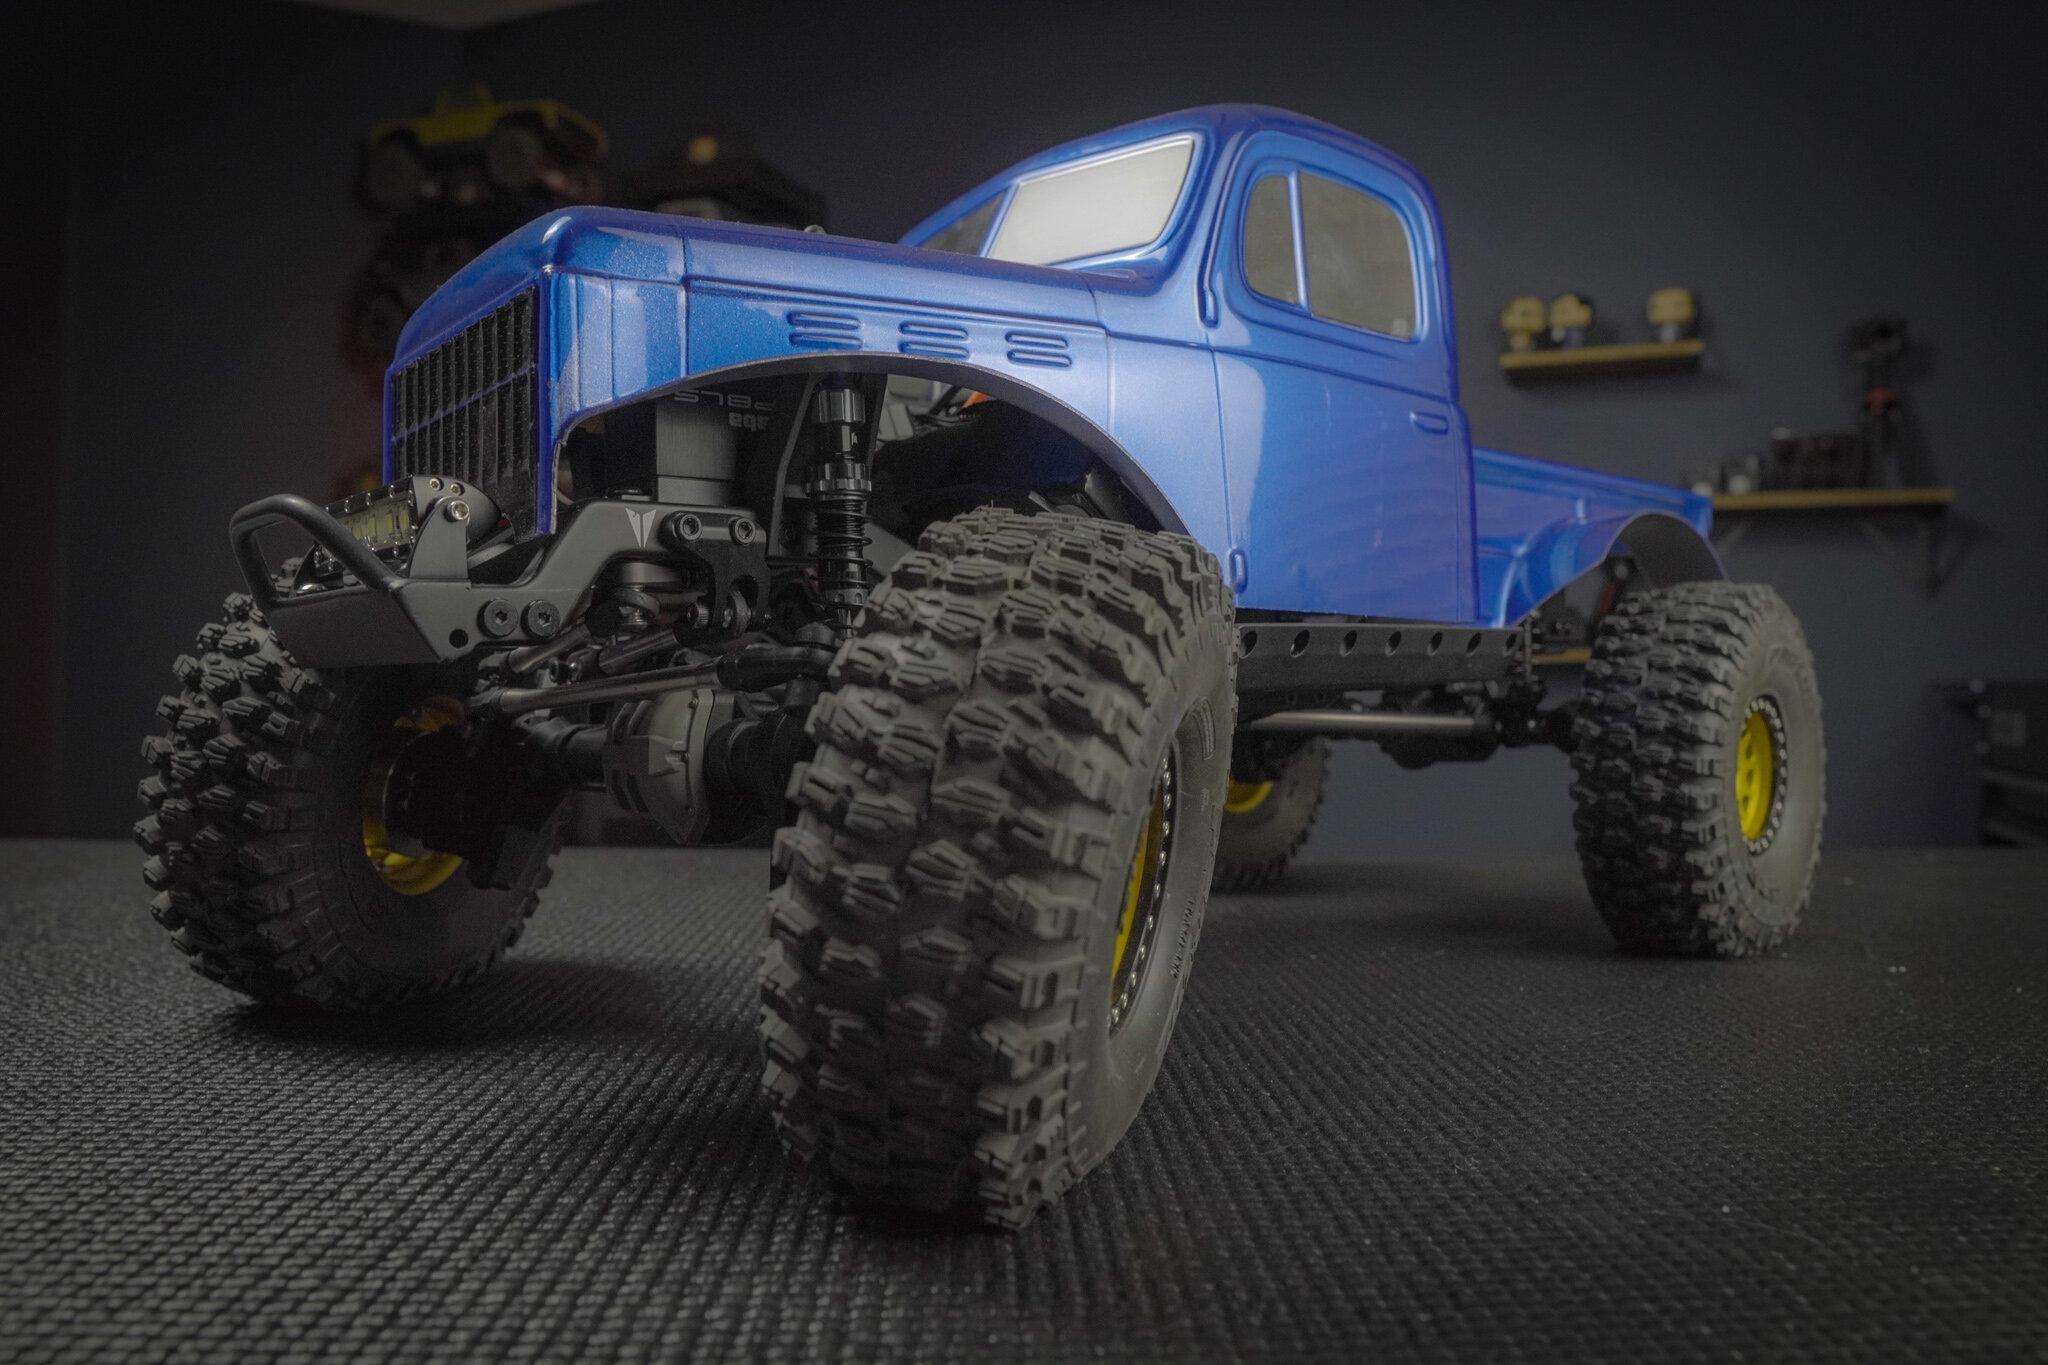 TRX4 VS4-10 Power Wagon - A fun and simple experiment to throw the a set of TRX4 axles under a Vanquish Products VS4-10 Chassis kit with other common parts!